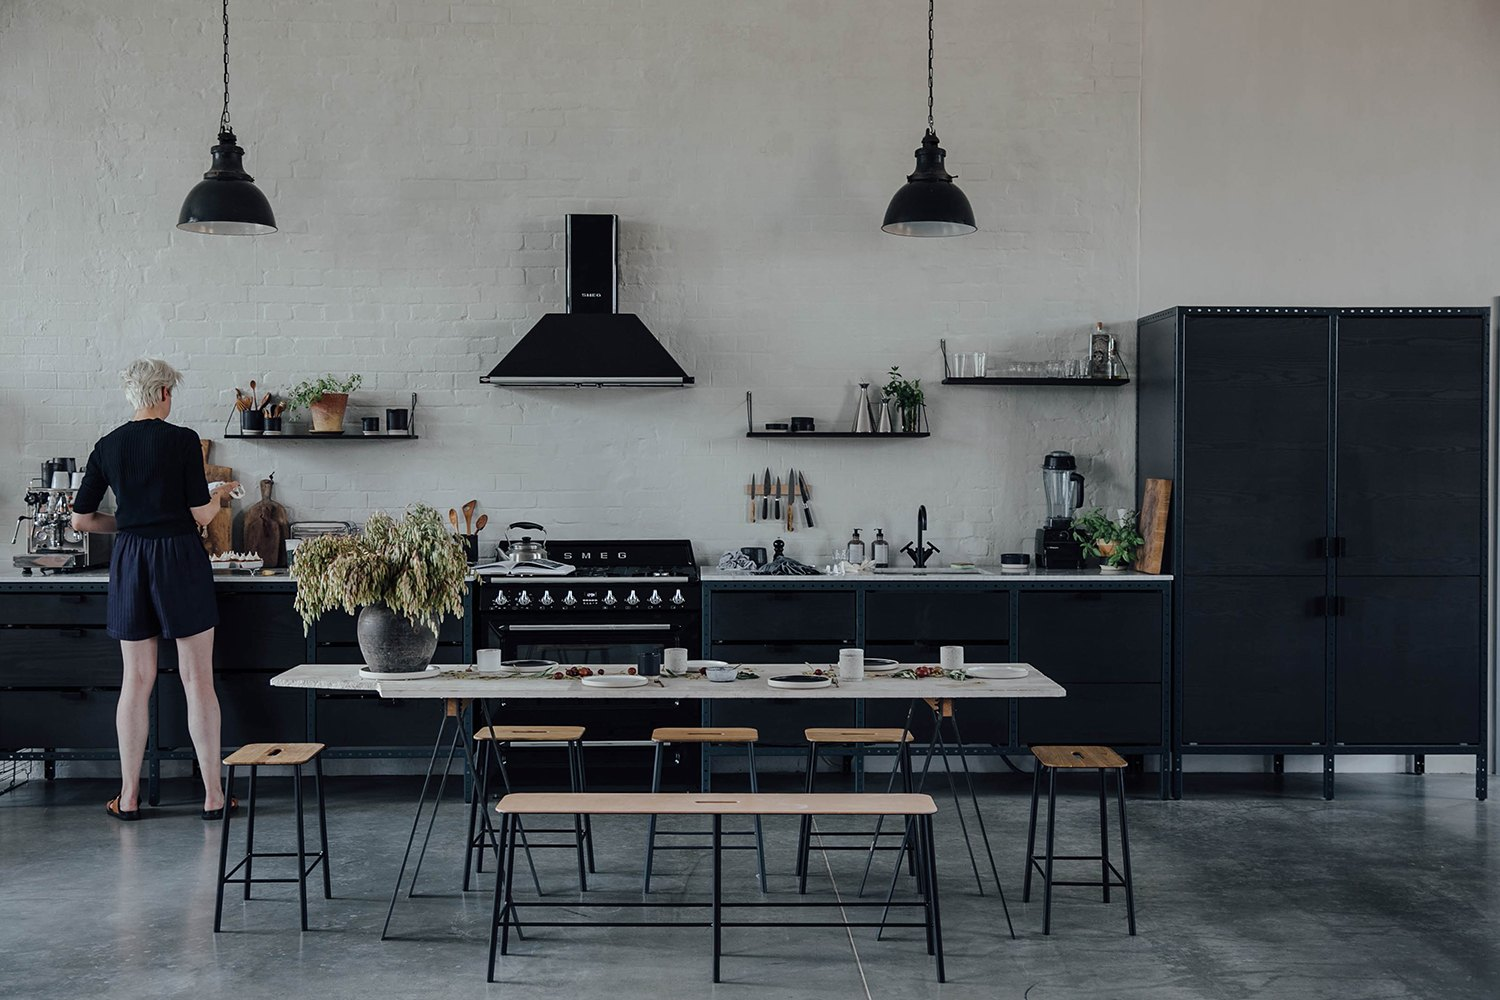 Frama Cph kitchen